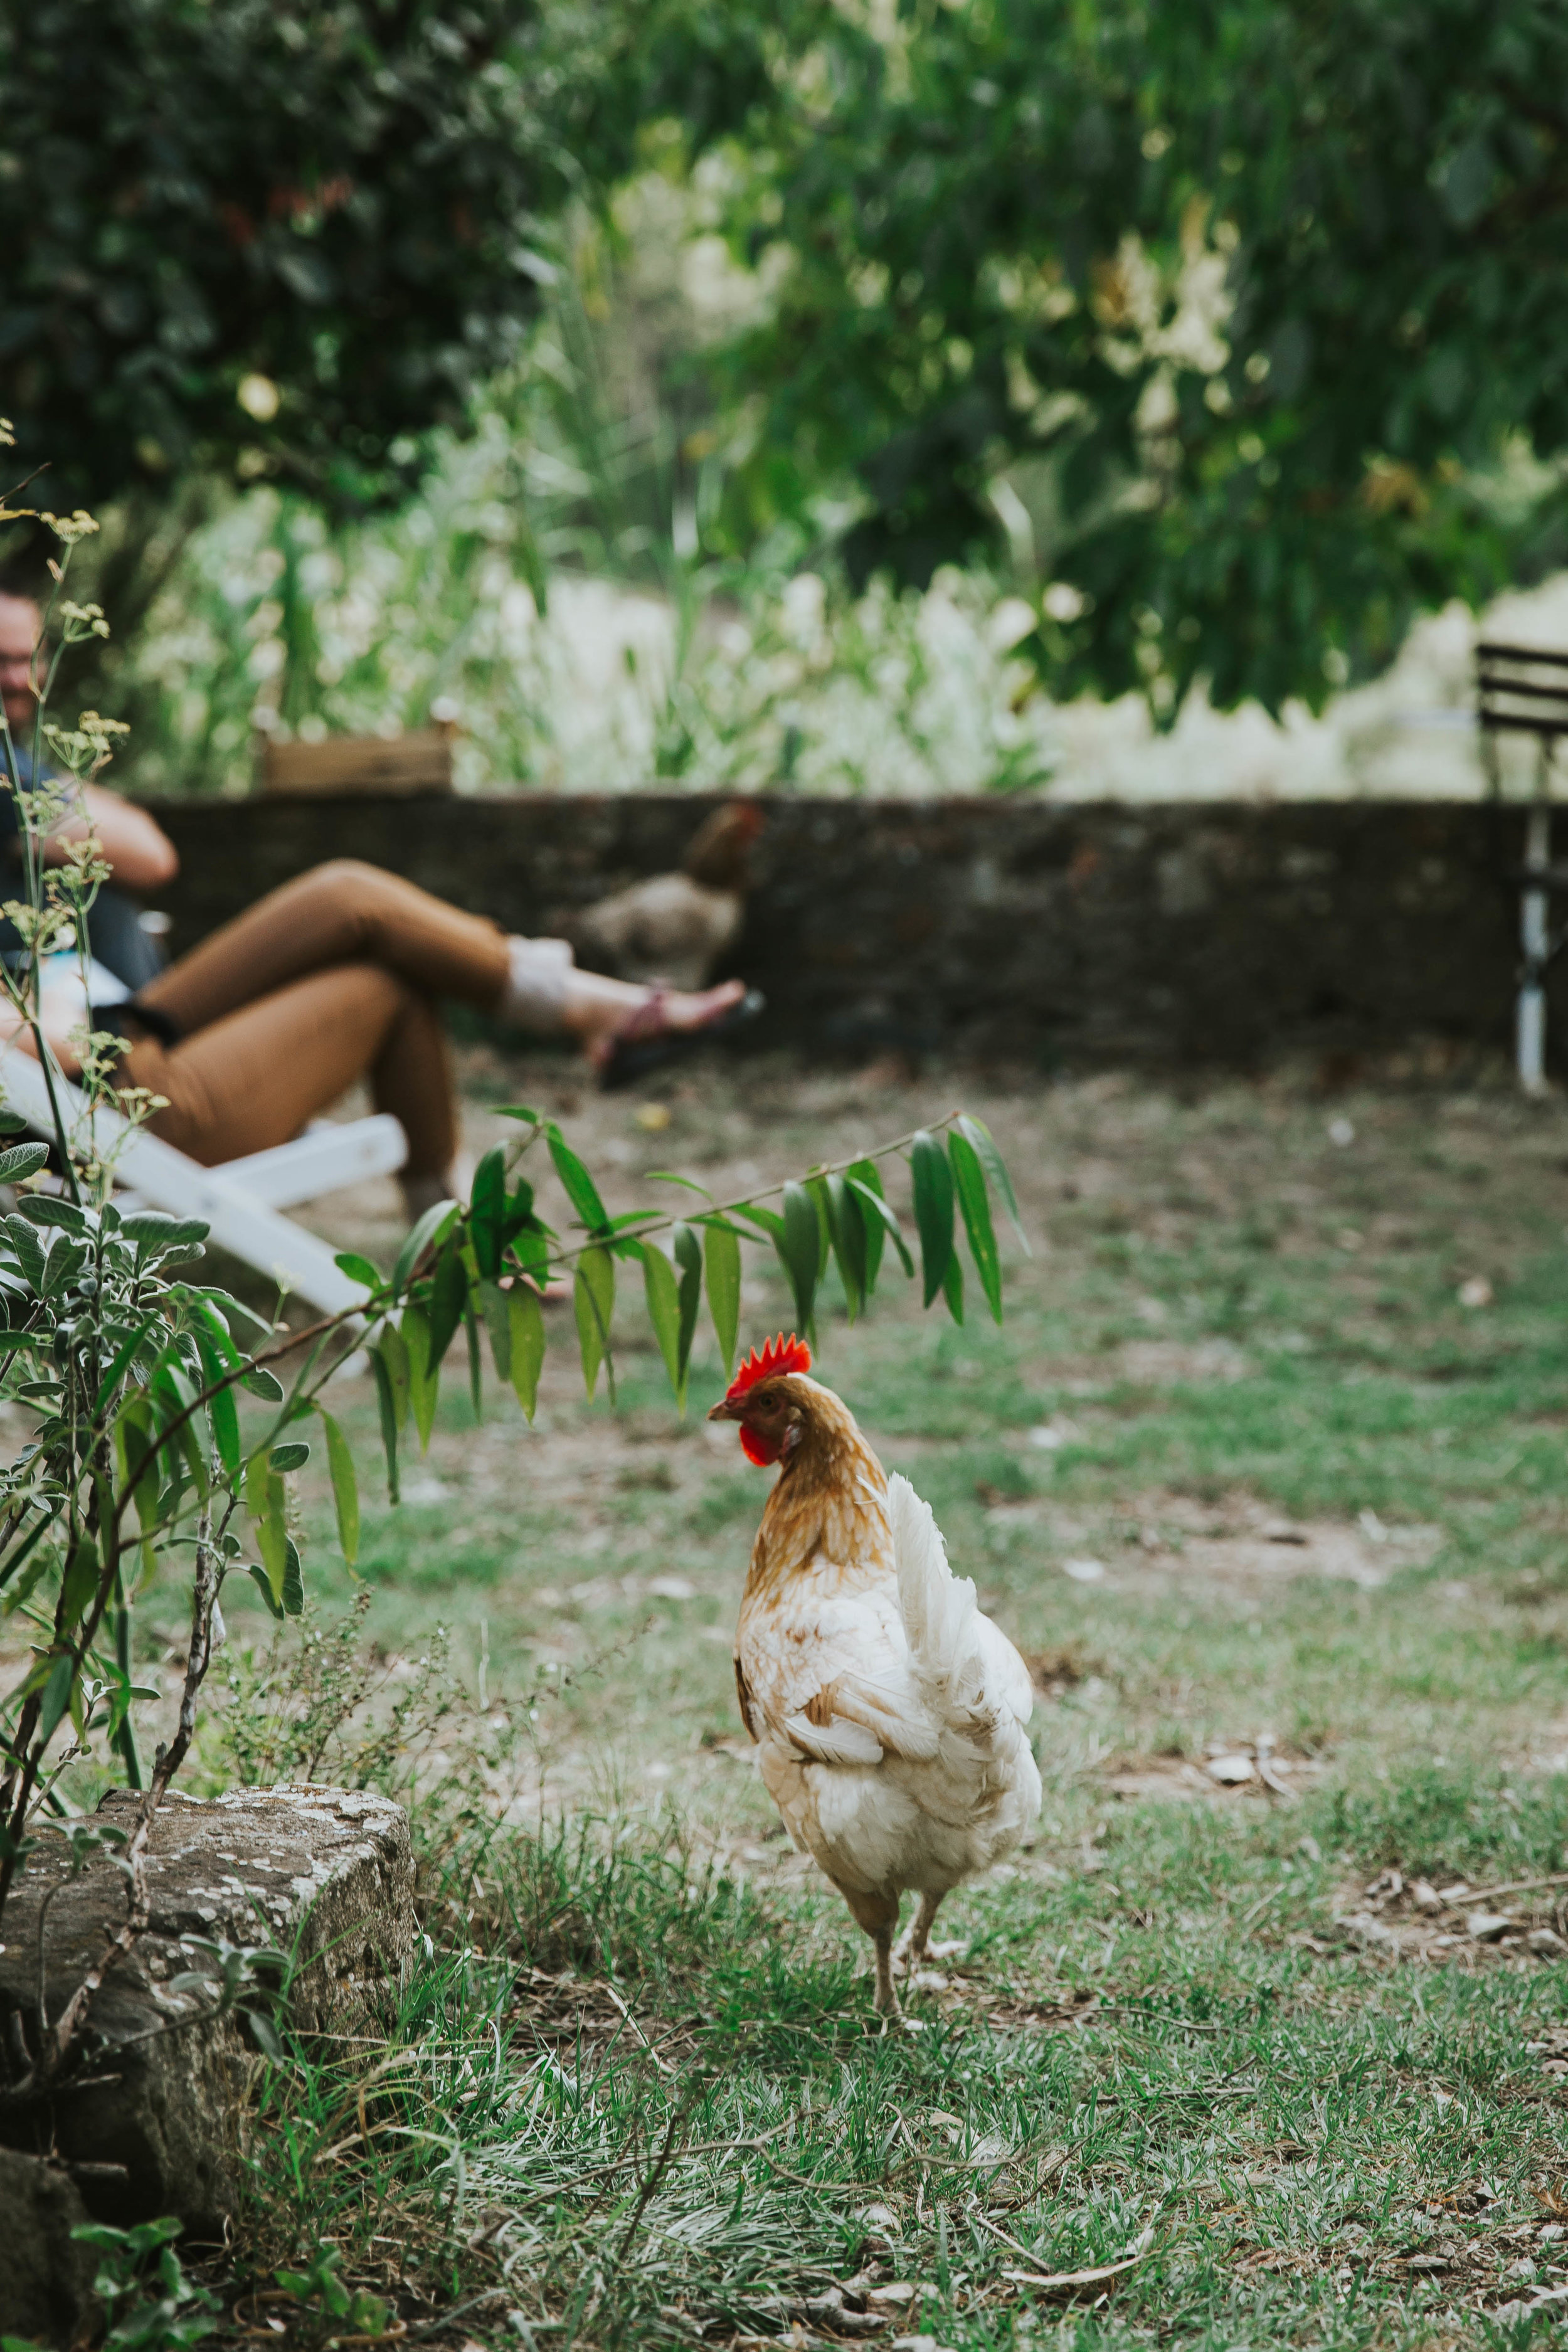 And because who doesn't like a friendly chicken. :)